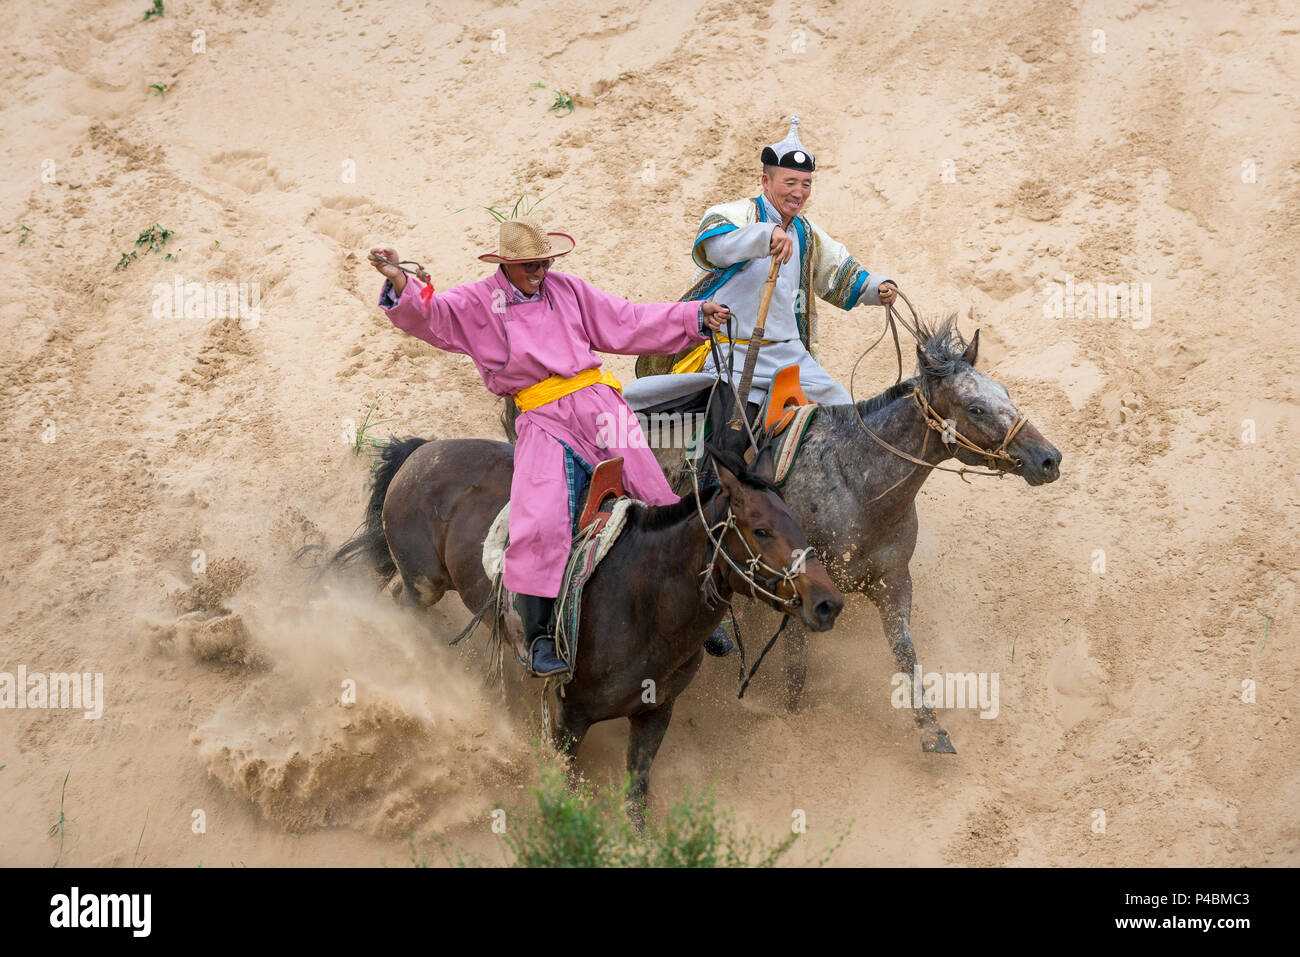 Horsemen dressed carries rope and pole urga, while herding camels along sand dunes, Xilinhot, Inner Mongolia, China - Stock Image